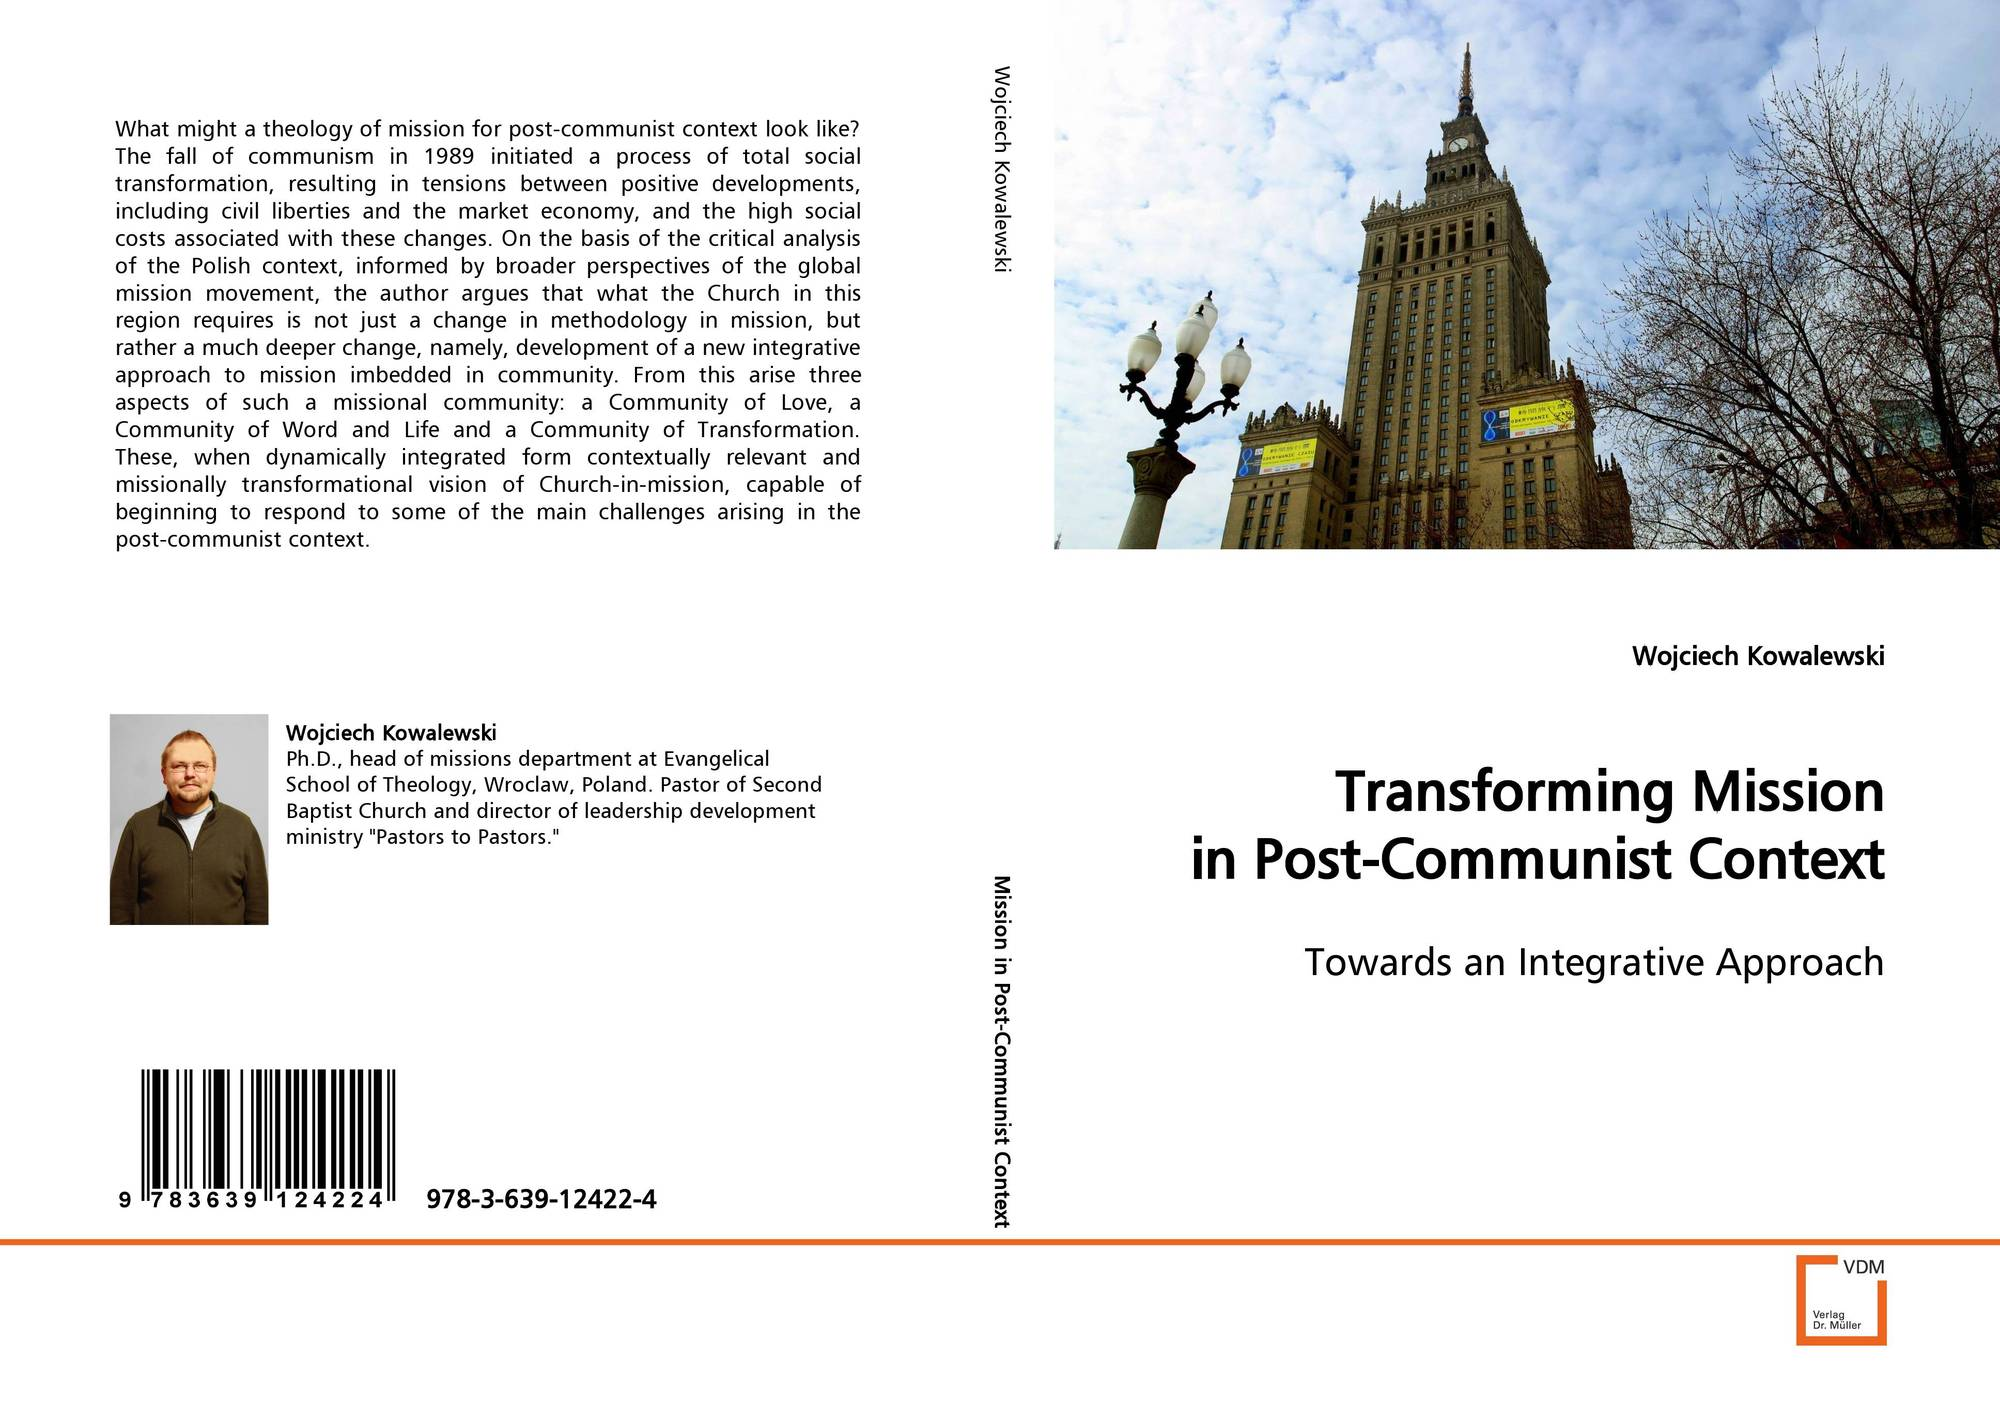 a critical analysis of communism Unlike most editing & proofreading services, we edit for everything: grammar, spelling, punctuation, idea flow, sentence structure, & more get started now.